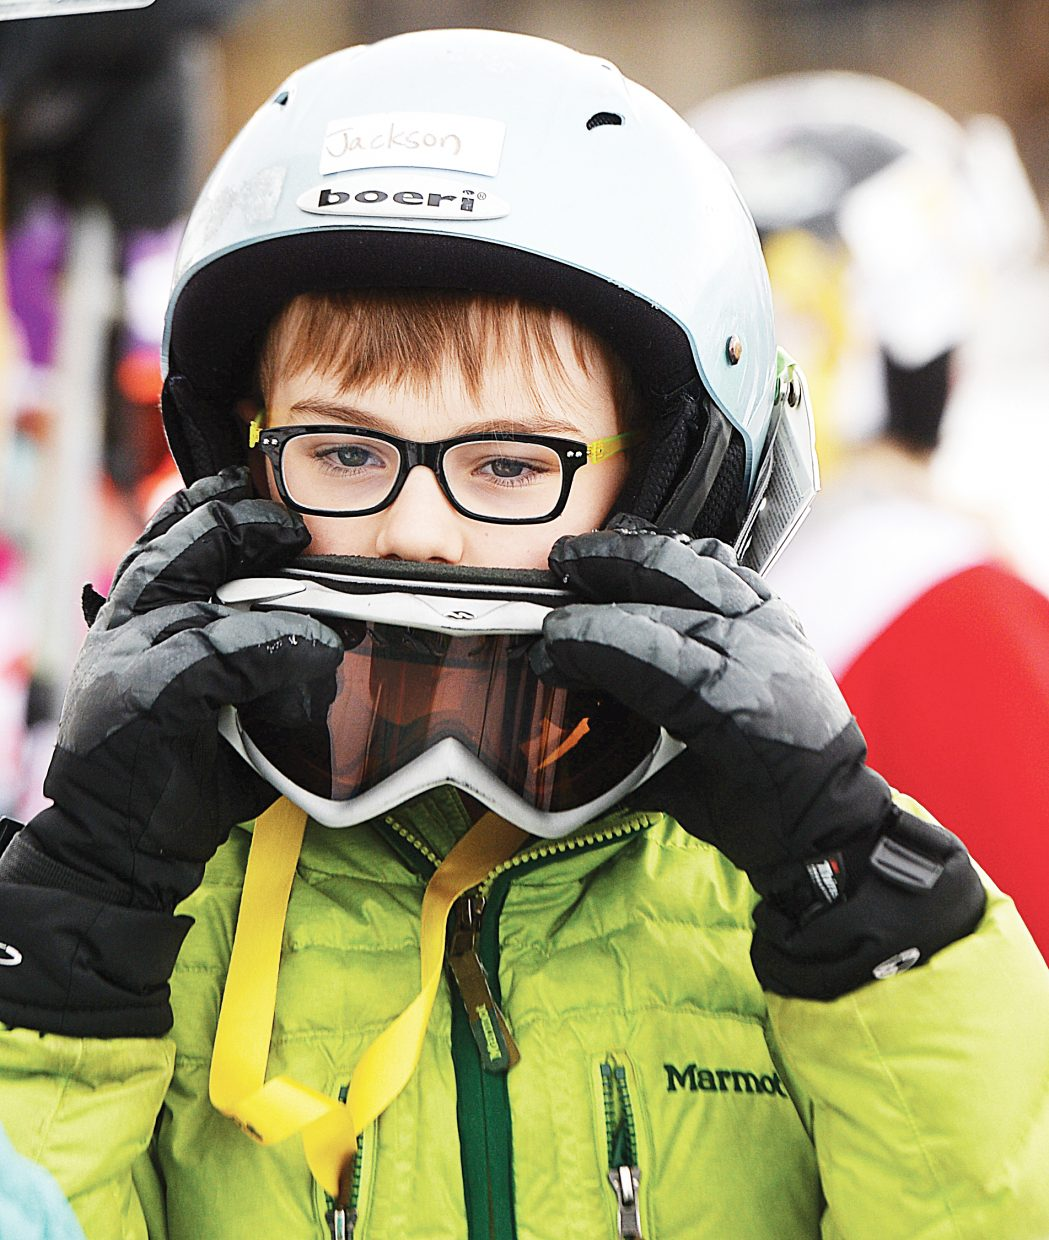 Jackson Tormey adjusts his goggles Friday morning while waiting for his shot at the annual Christy Sports Soda Pop Slalom, which was held at the base of Steamboat Ski Area.